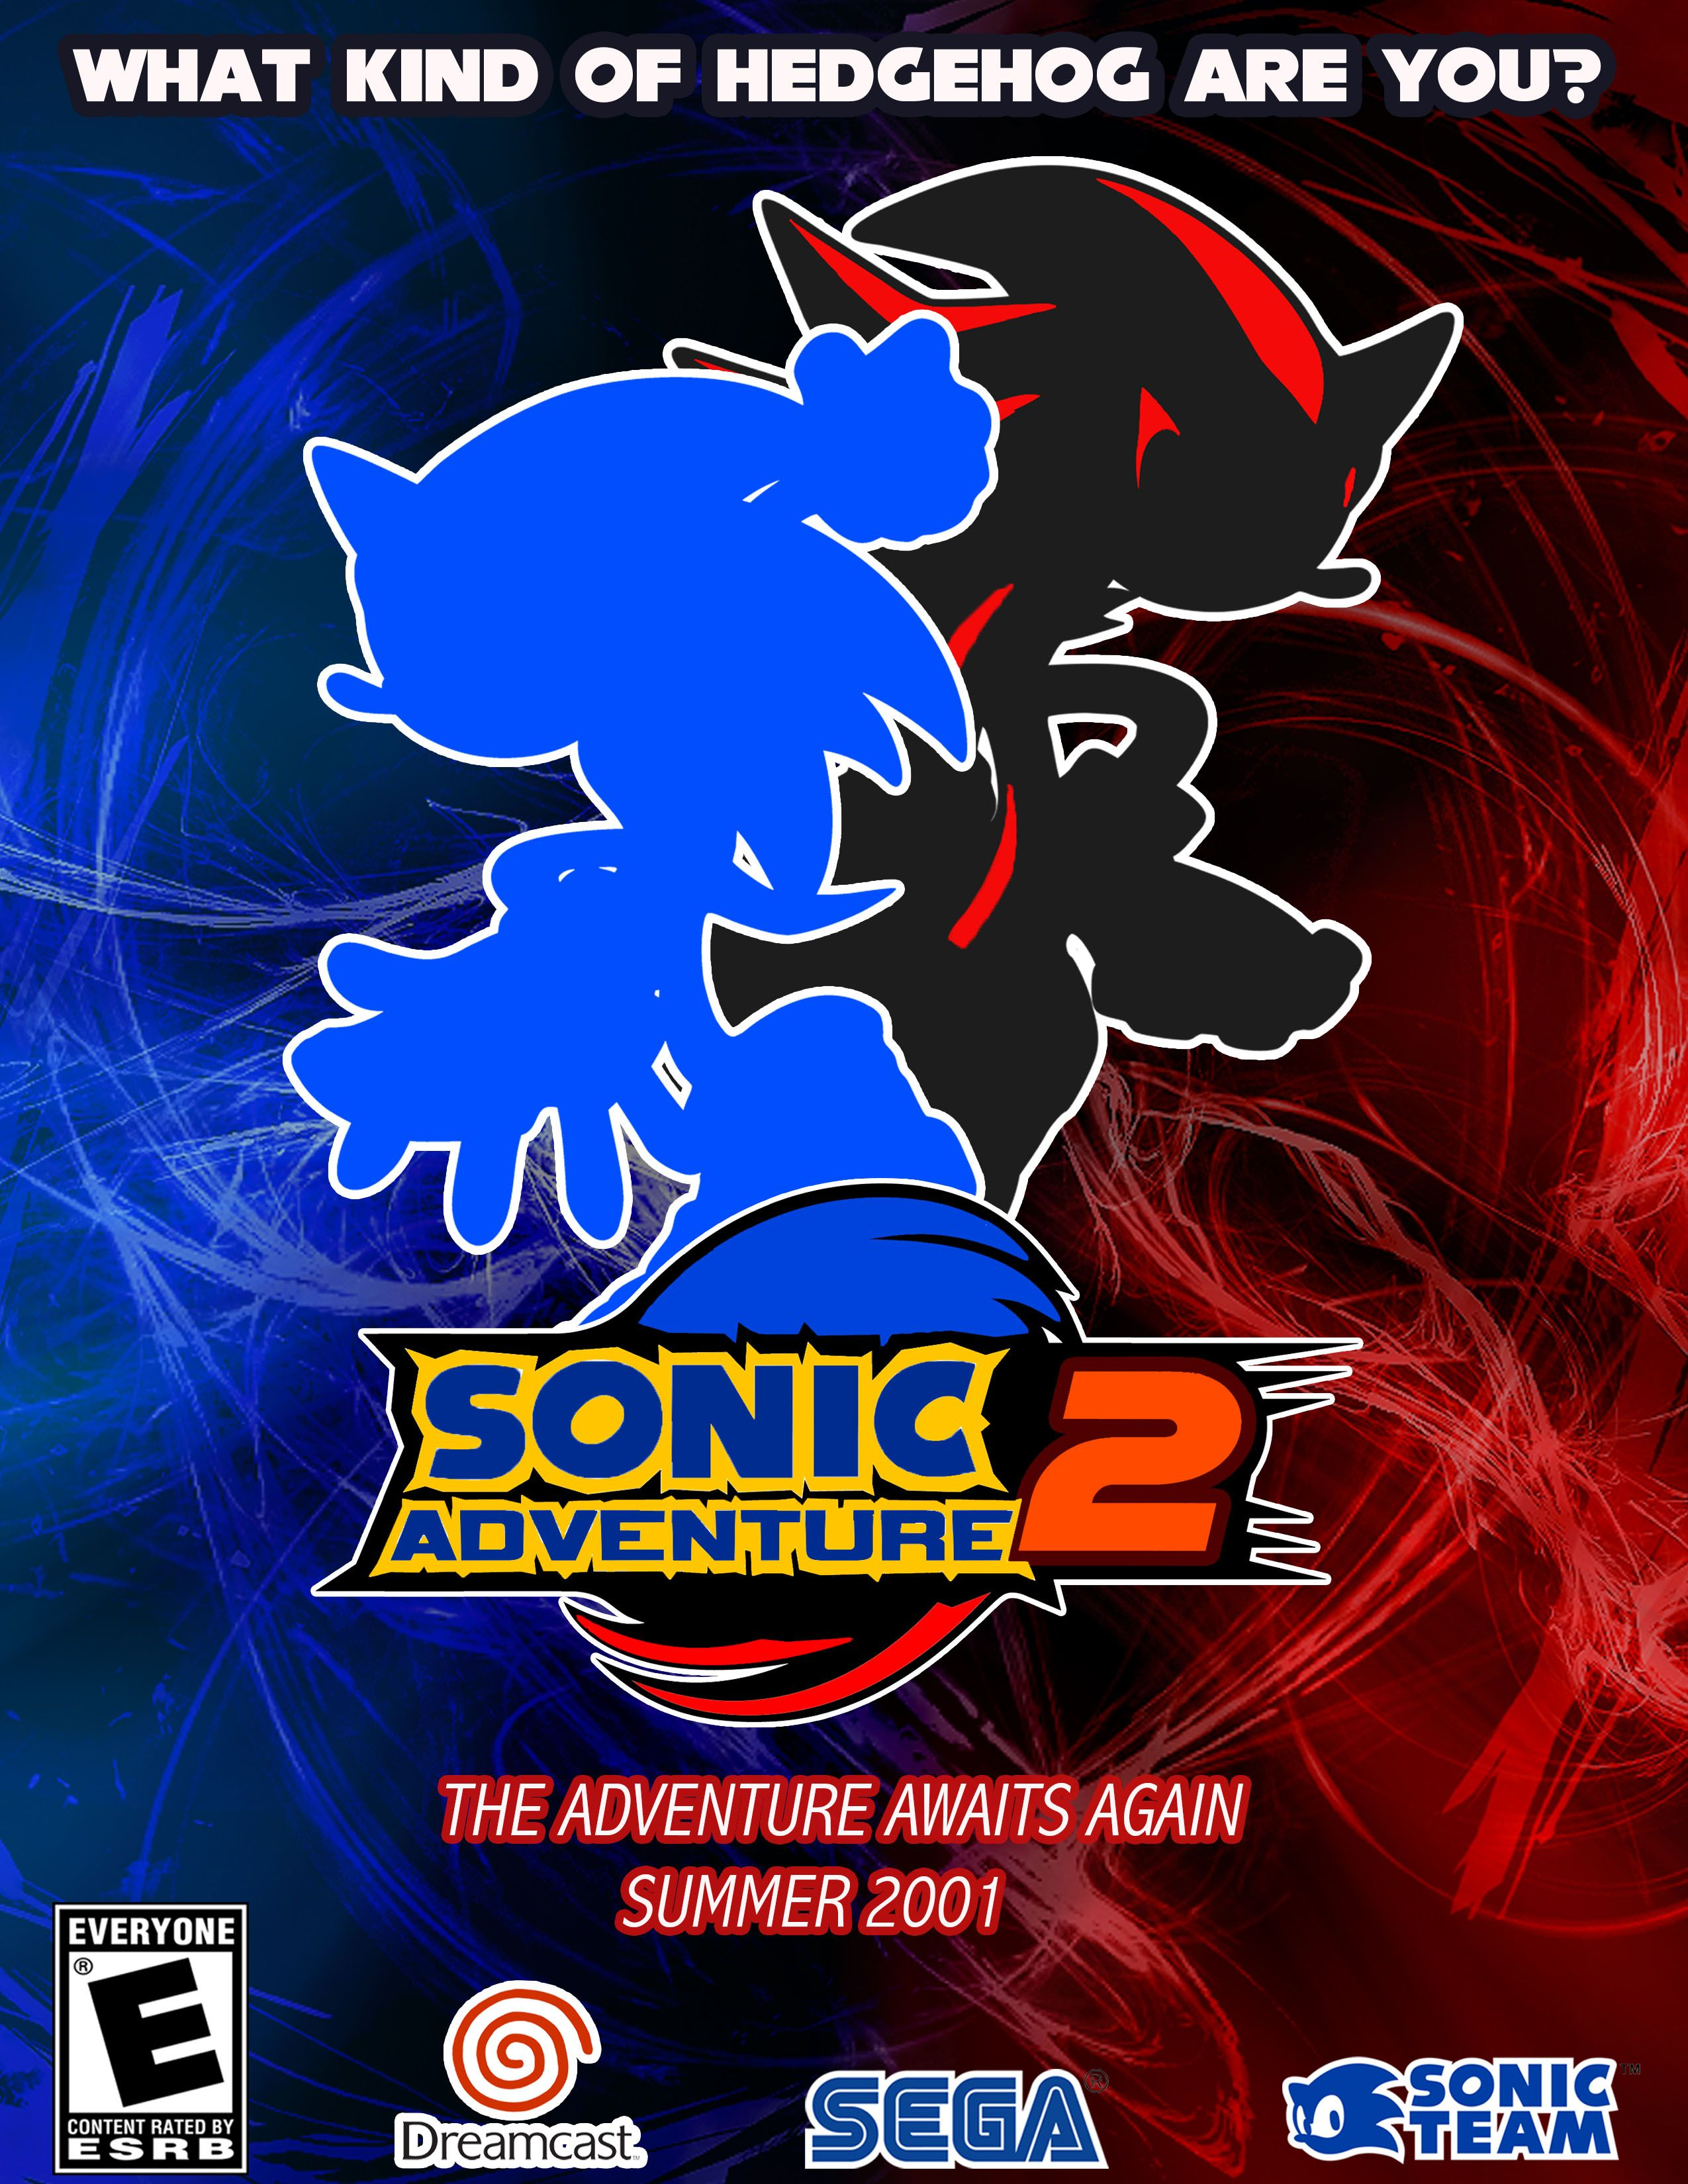 Sonic Adventure 2 Vector Poster By Sophia Yacoby Via Photoshop Sonic Shadow The Hedgehog Sonic The Hedgehog